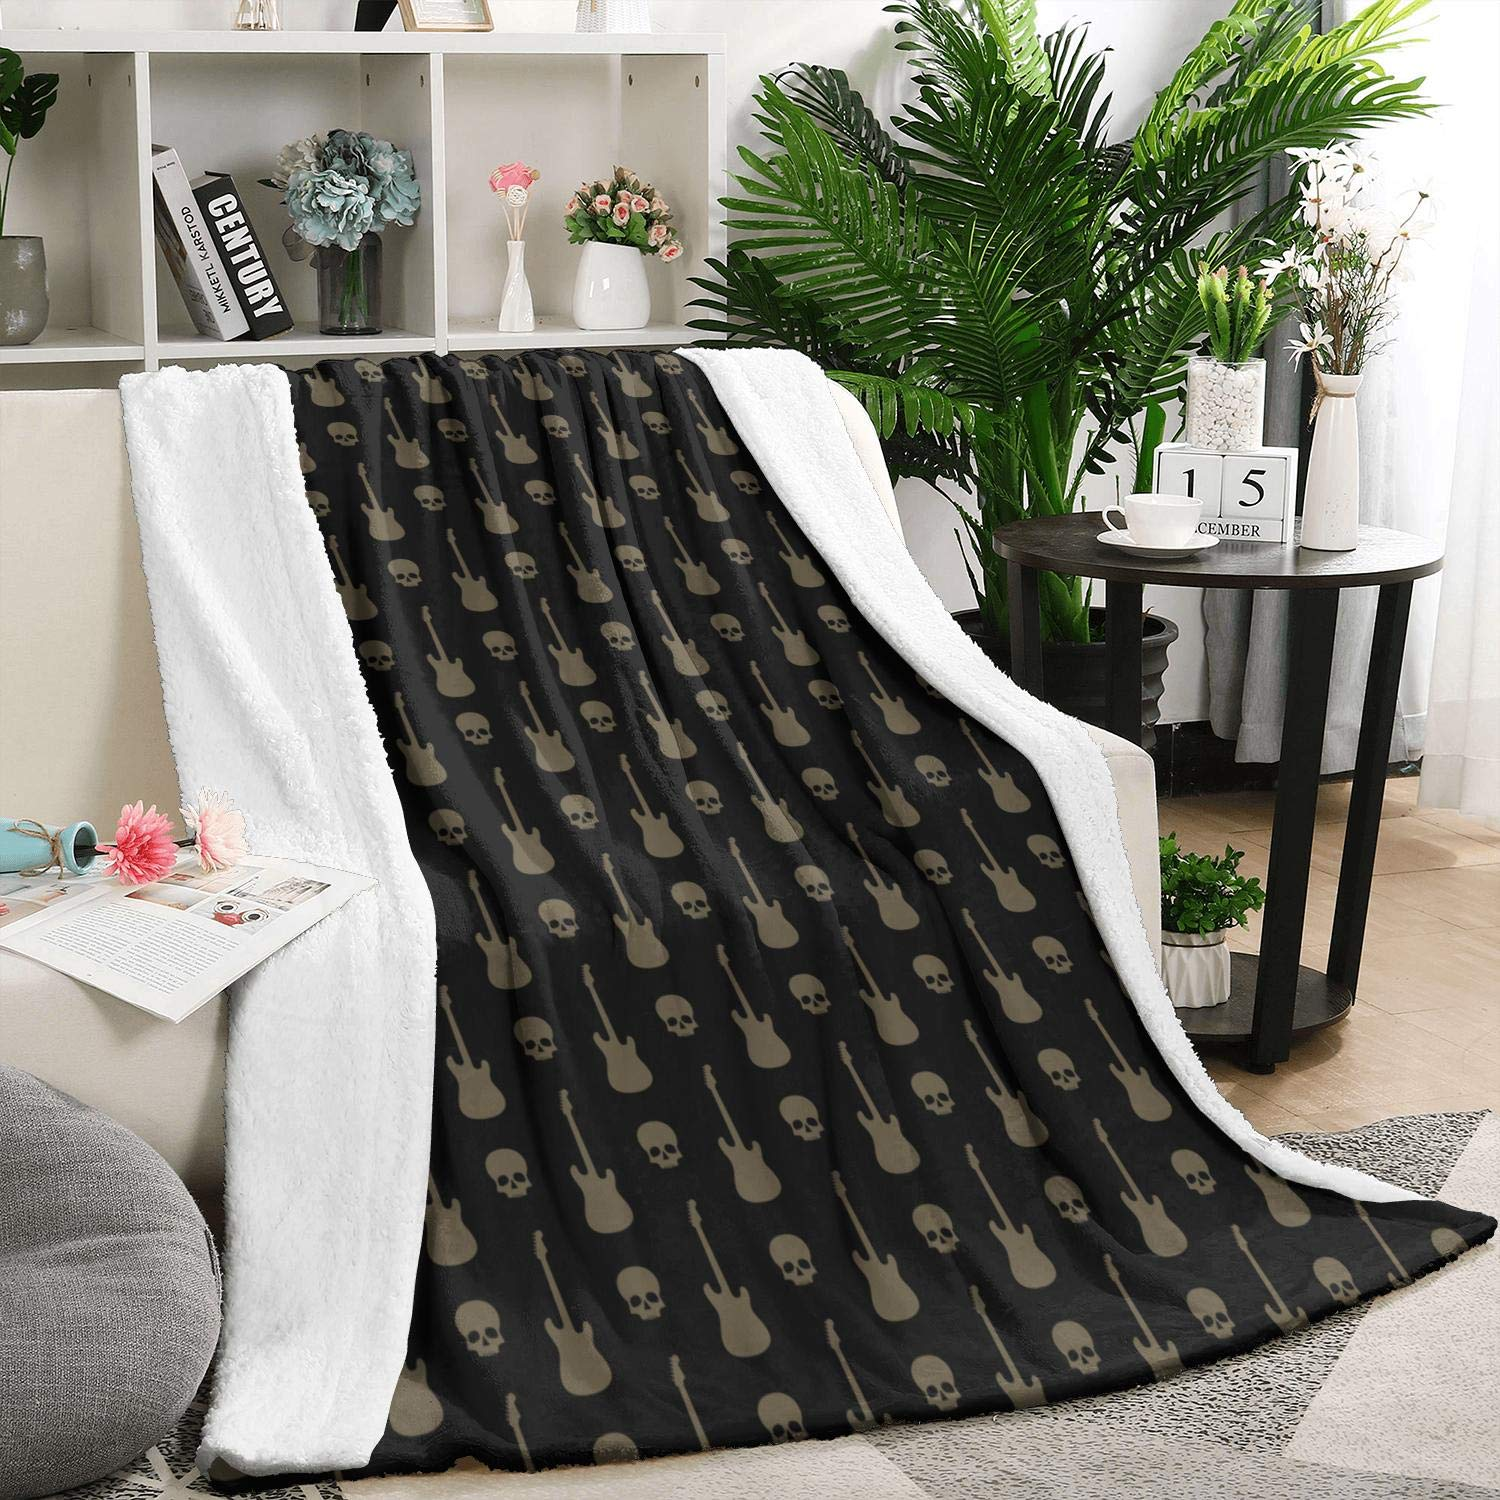 Heart Wolf Skulls and Guitars White 5979 Inch Flannel Fleece Blanket Weighted Blanket Warm Bed Blanket by Heart Wolf